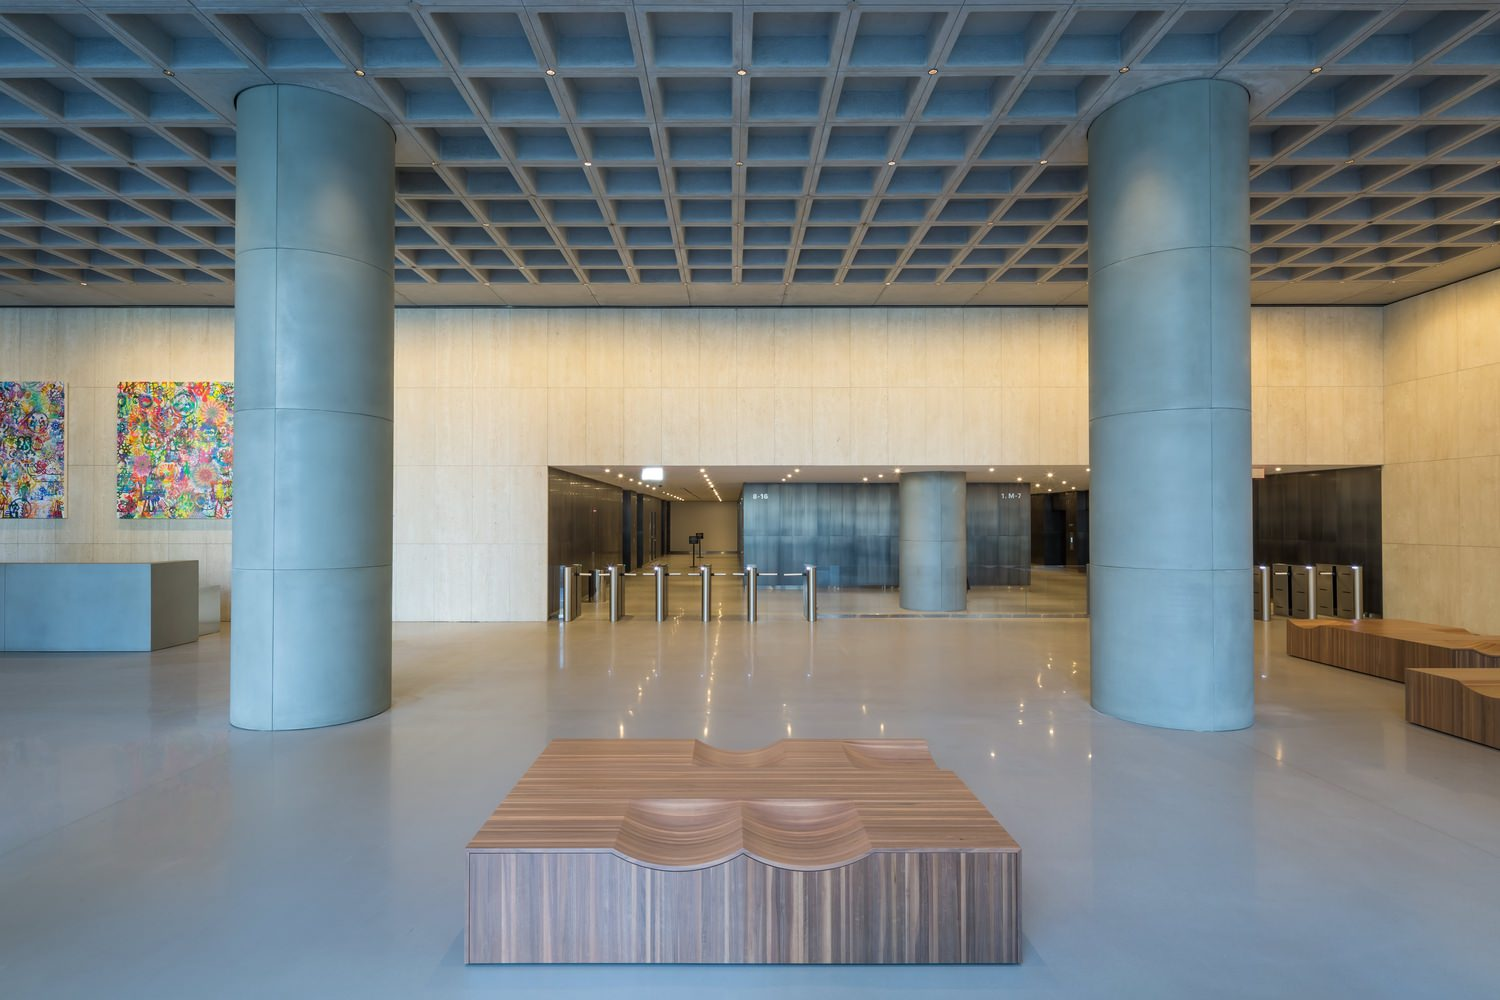 A lobby in a building that has some large concrete pillars as well as some seating areas around the outside of it.